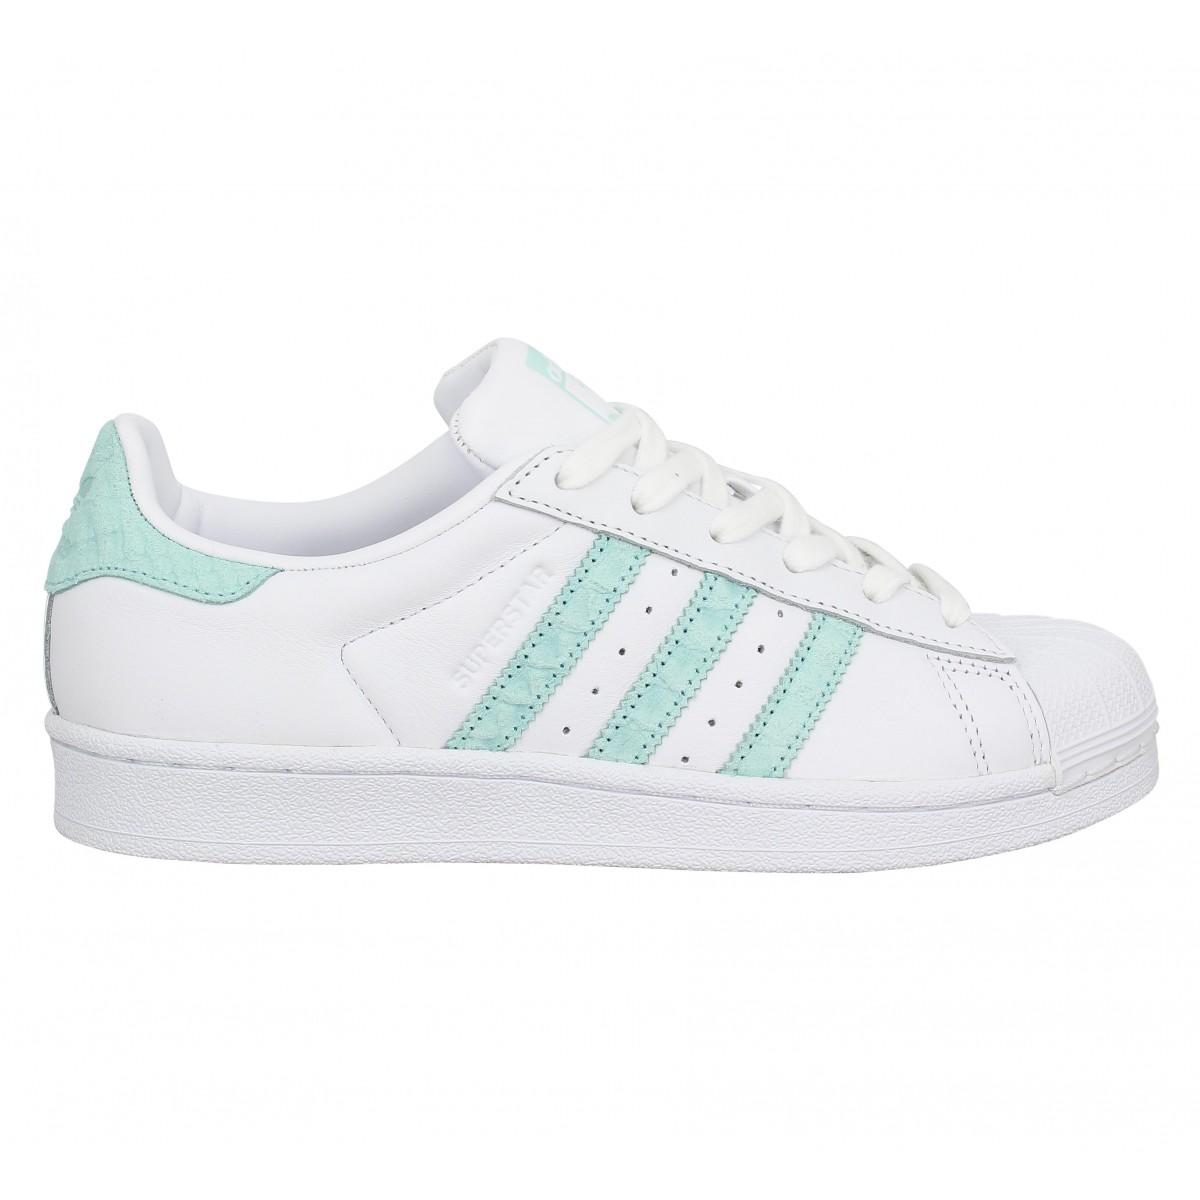 design intemporel c2c69 d23d9 ADIDAS Superstar cuir Femme Blc Vert